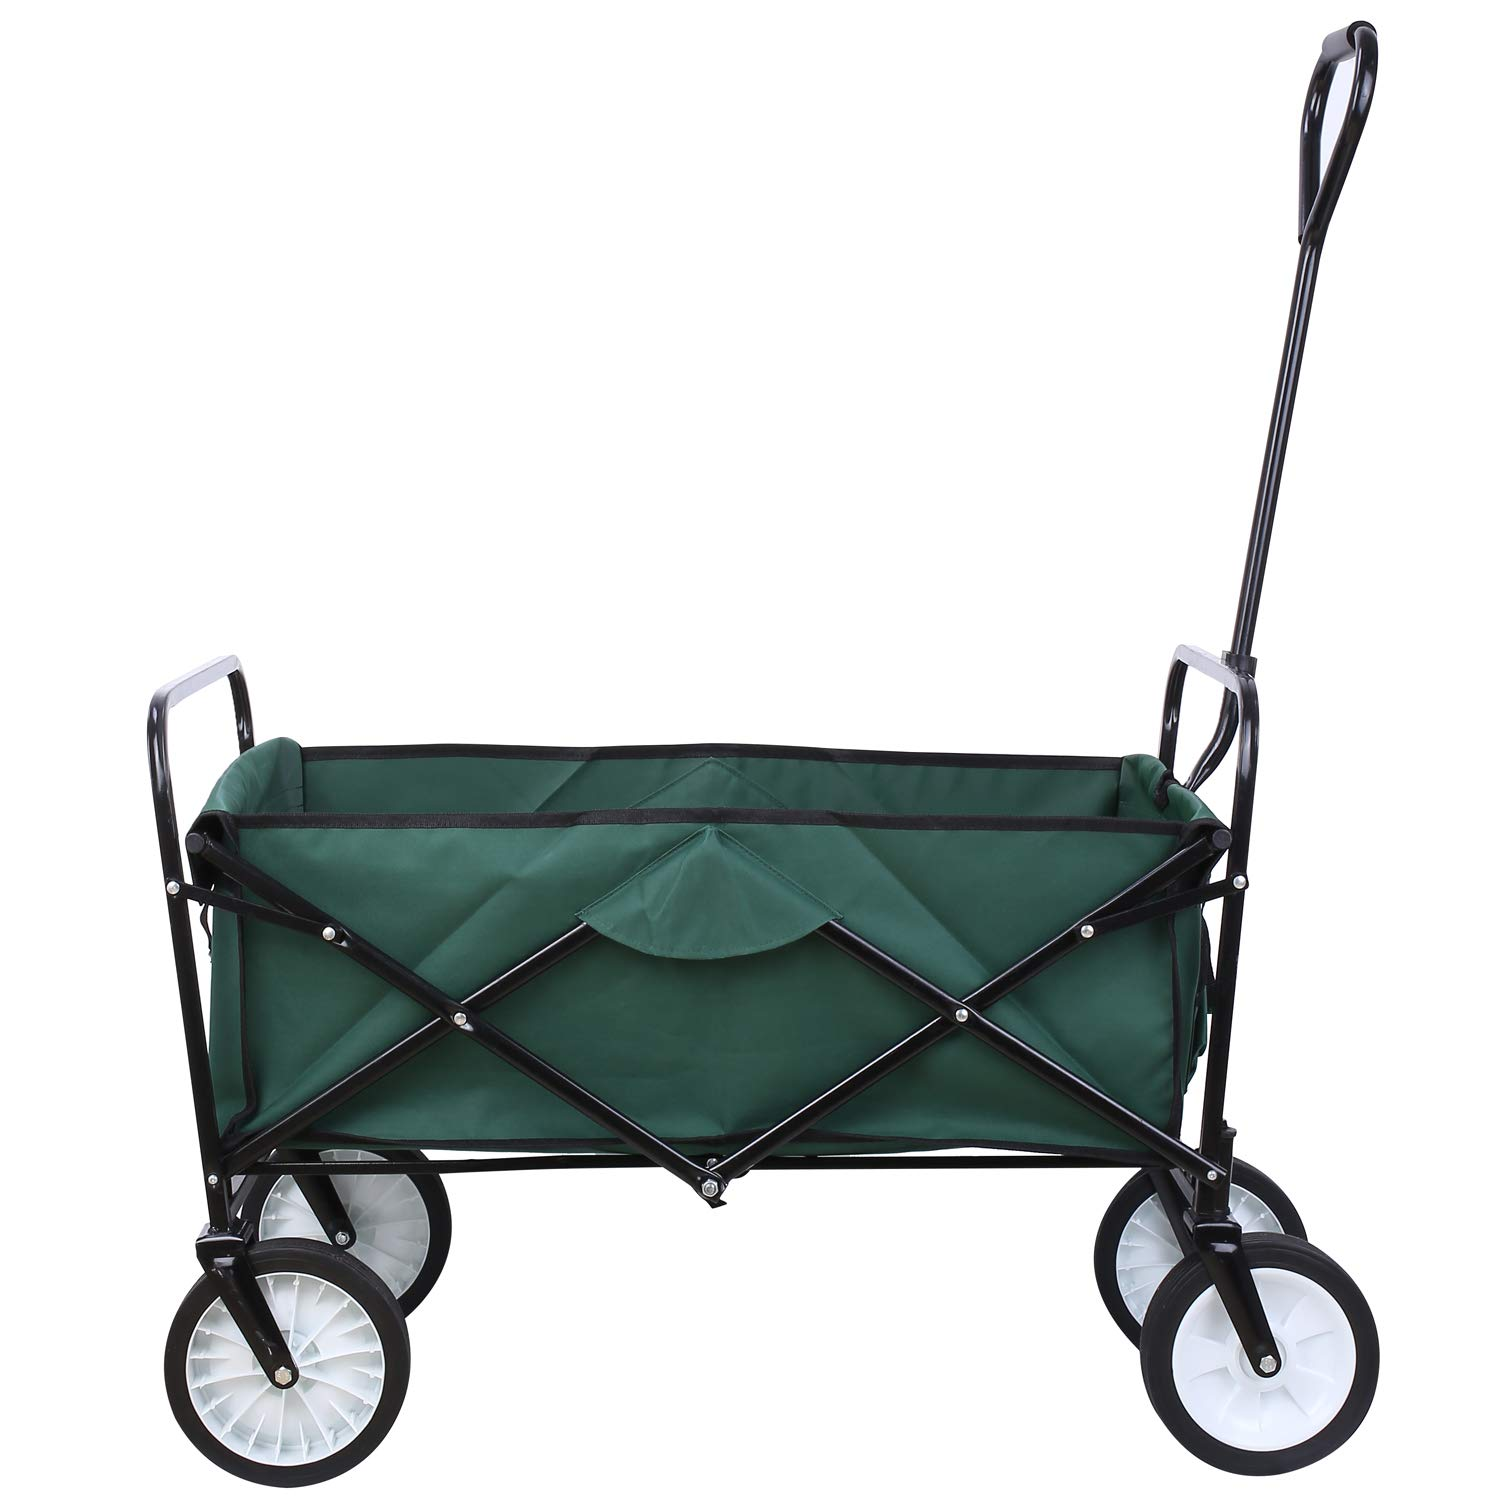 Femor Collapsible Folding Outdoor Utility Wagon